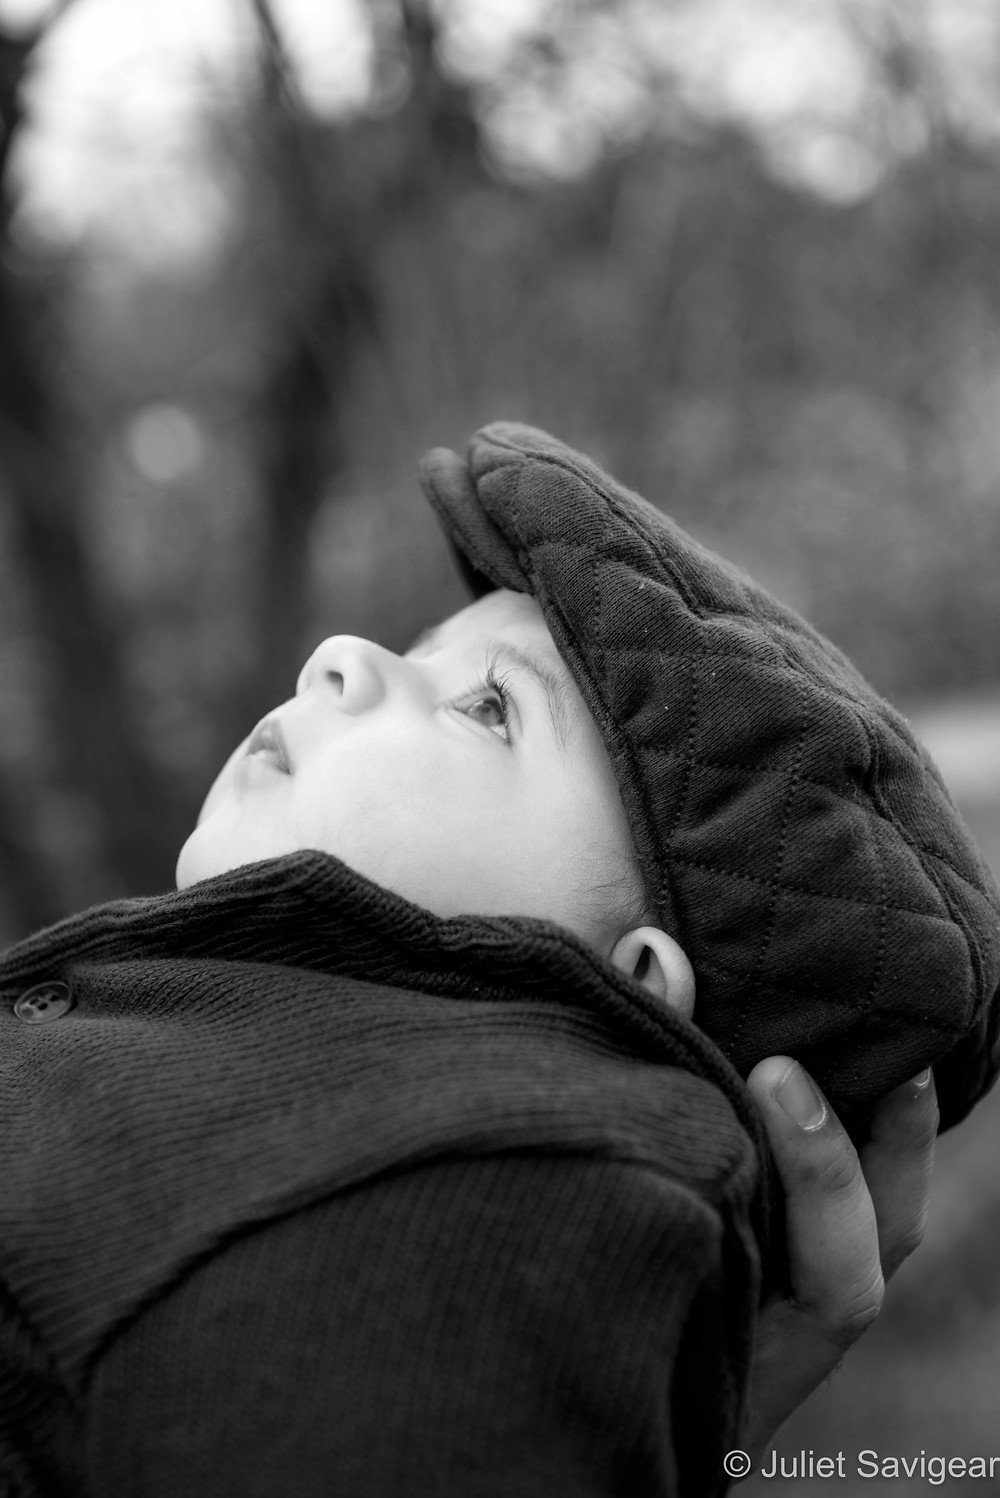 Baby In Hat - Baby Photography - Tooting Common